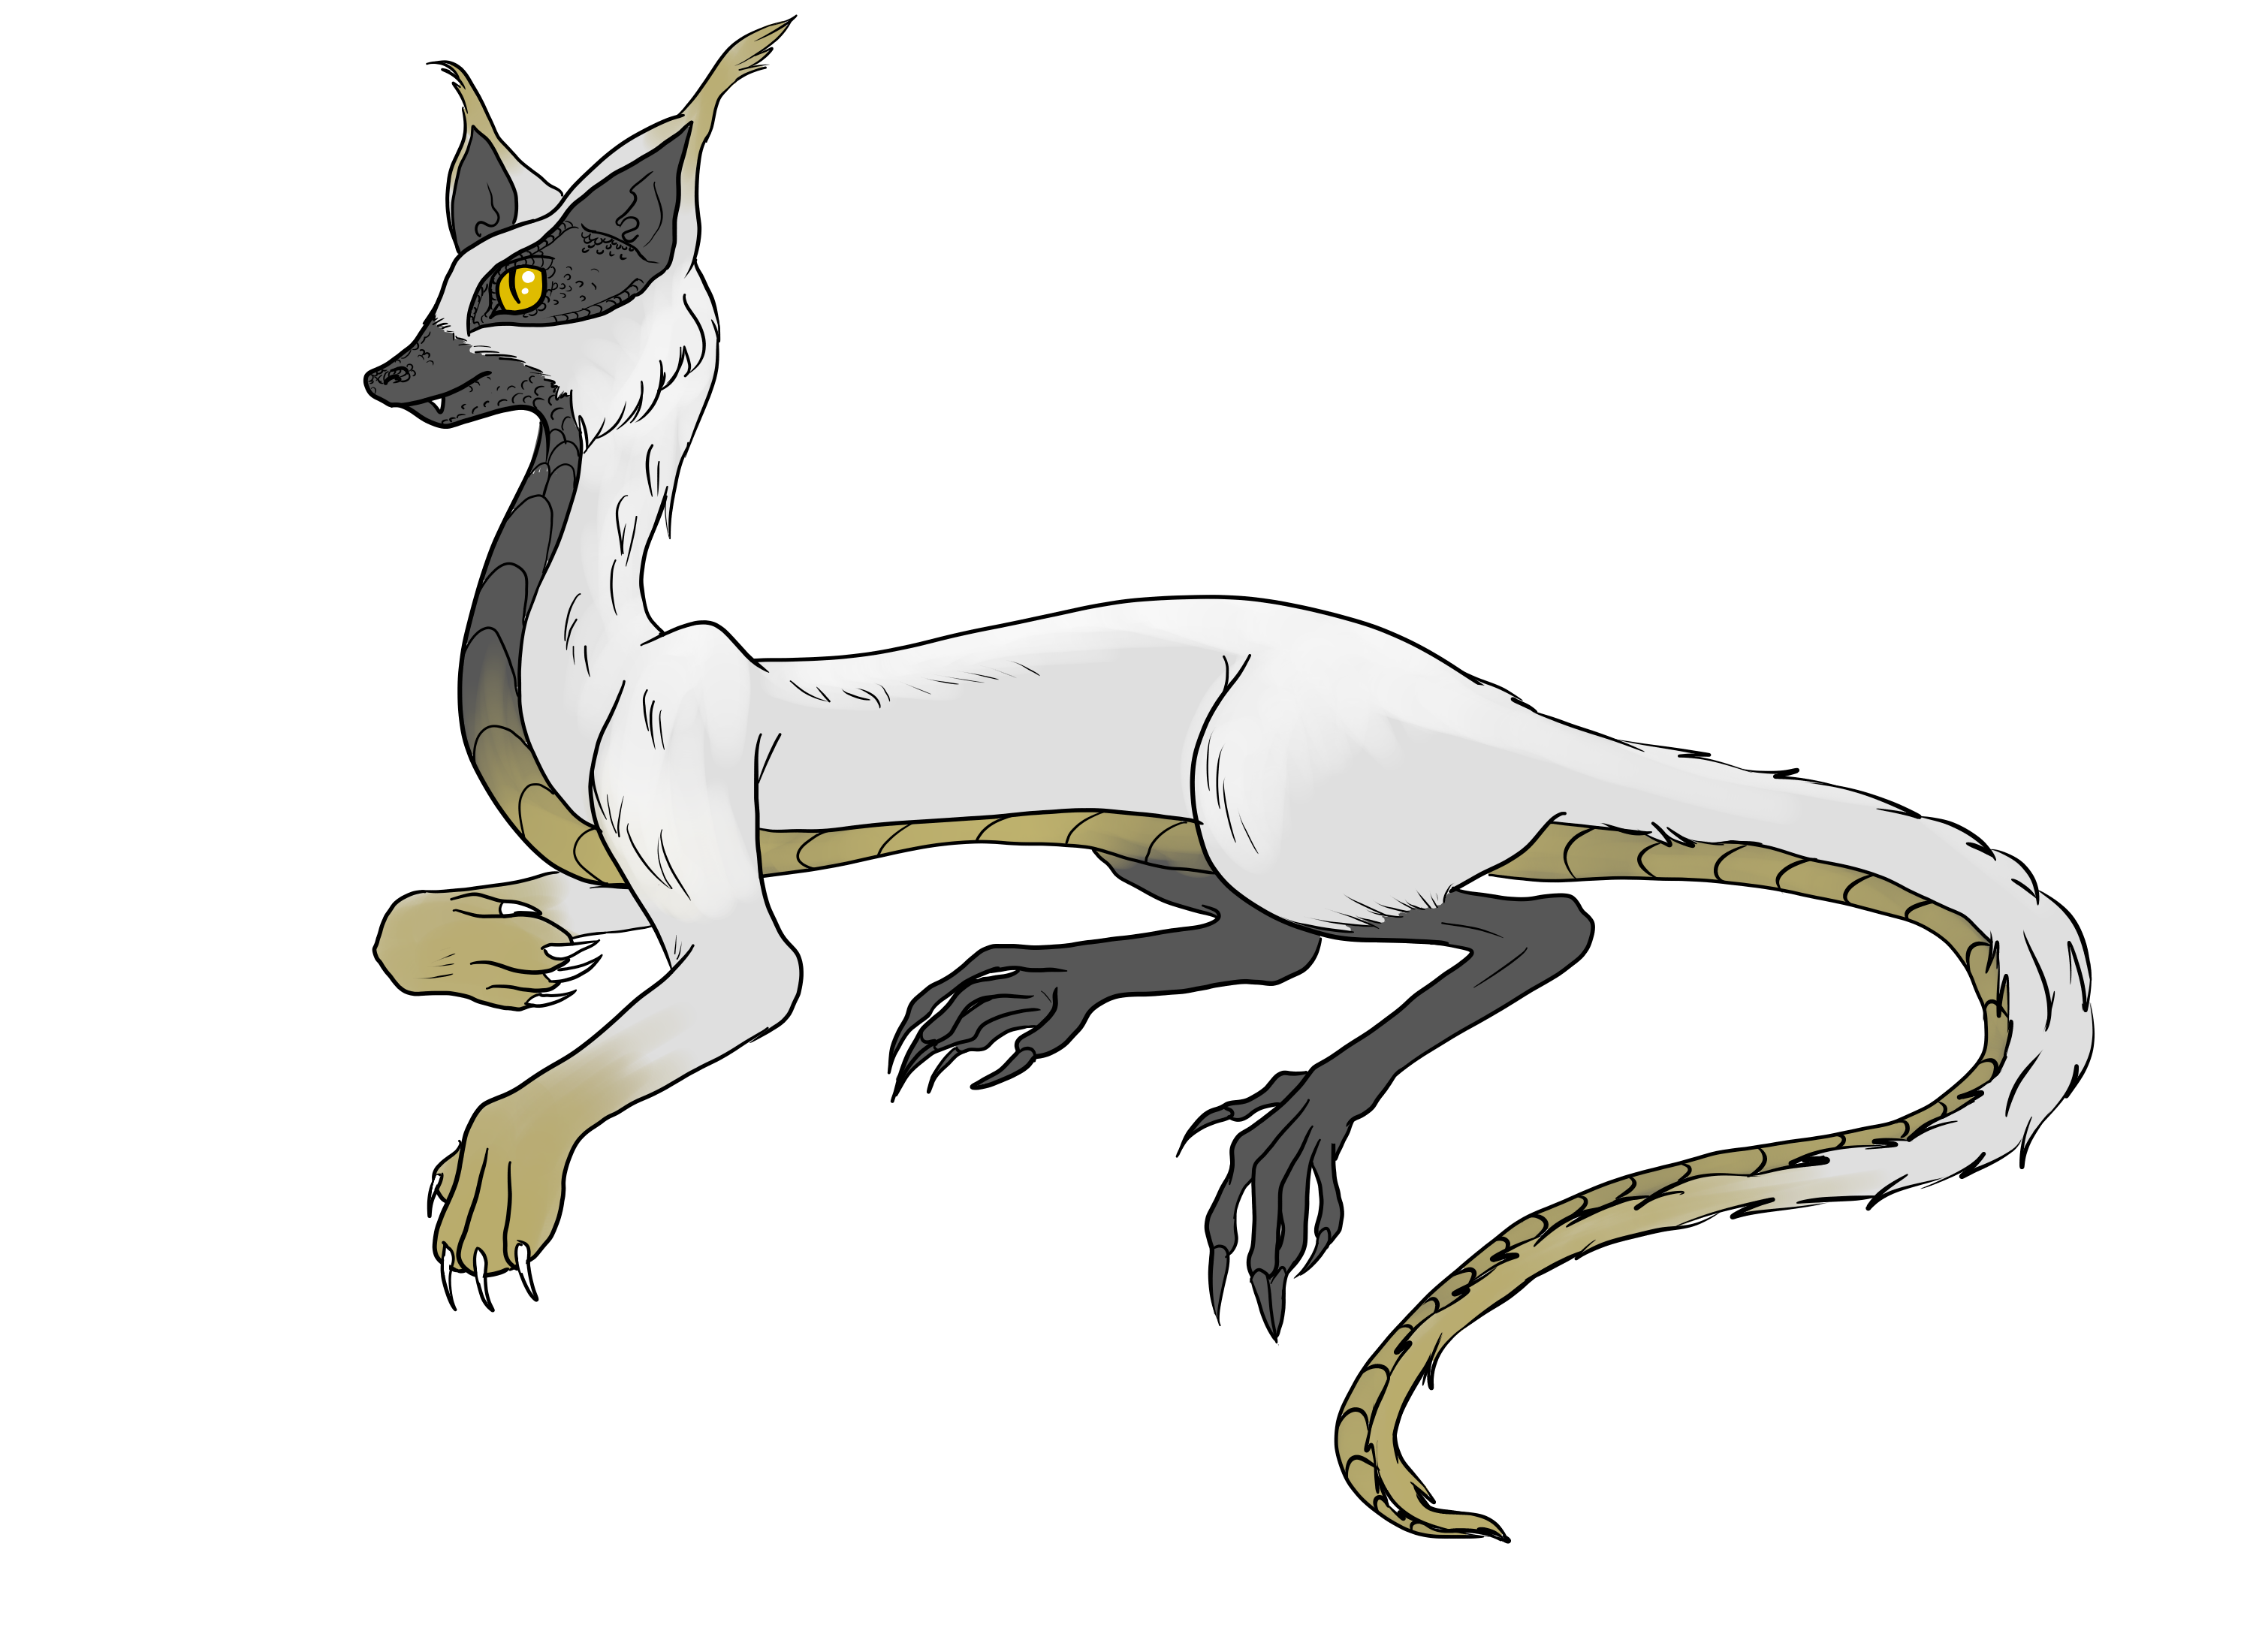 Drawing creatures made up. Fionlagh or fion shortly